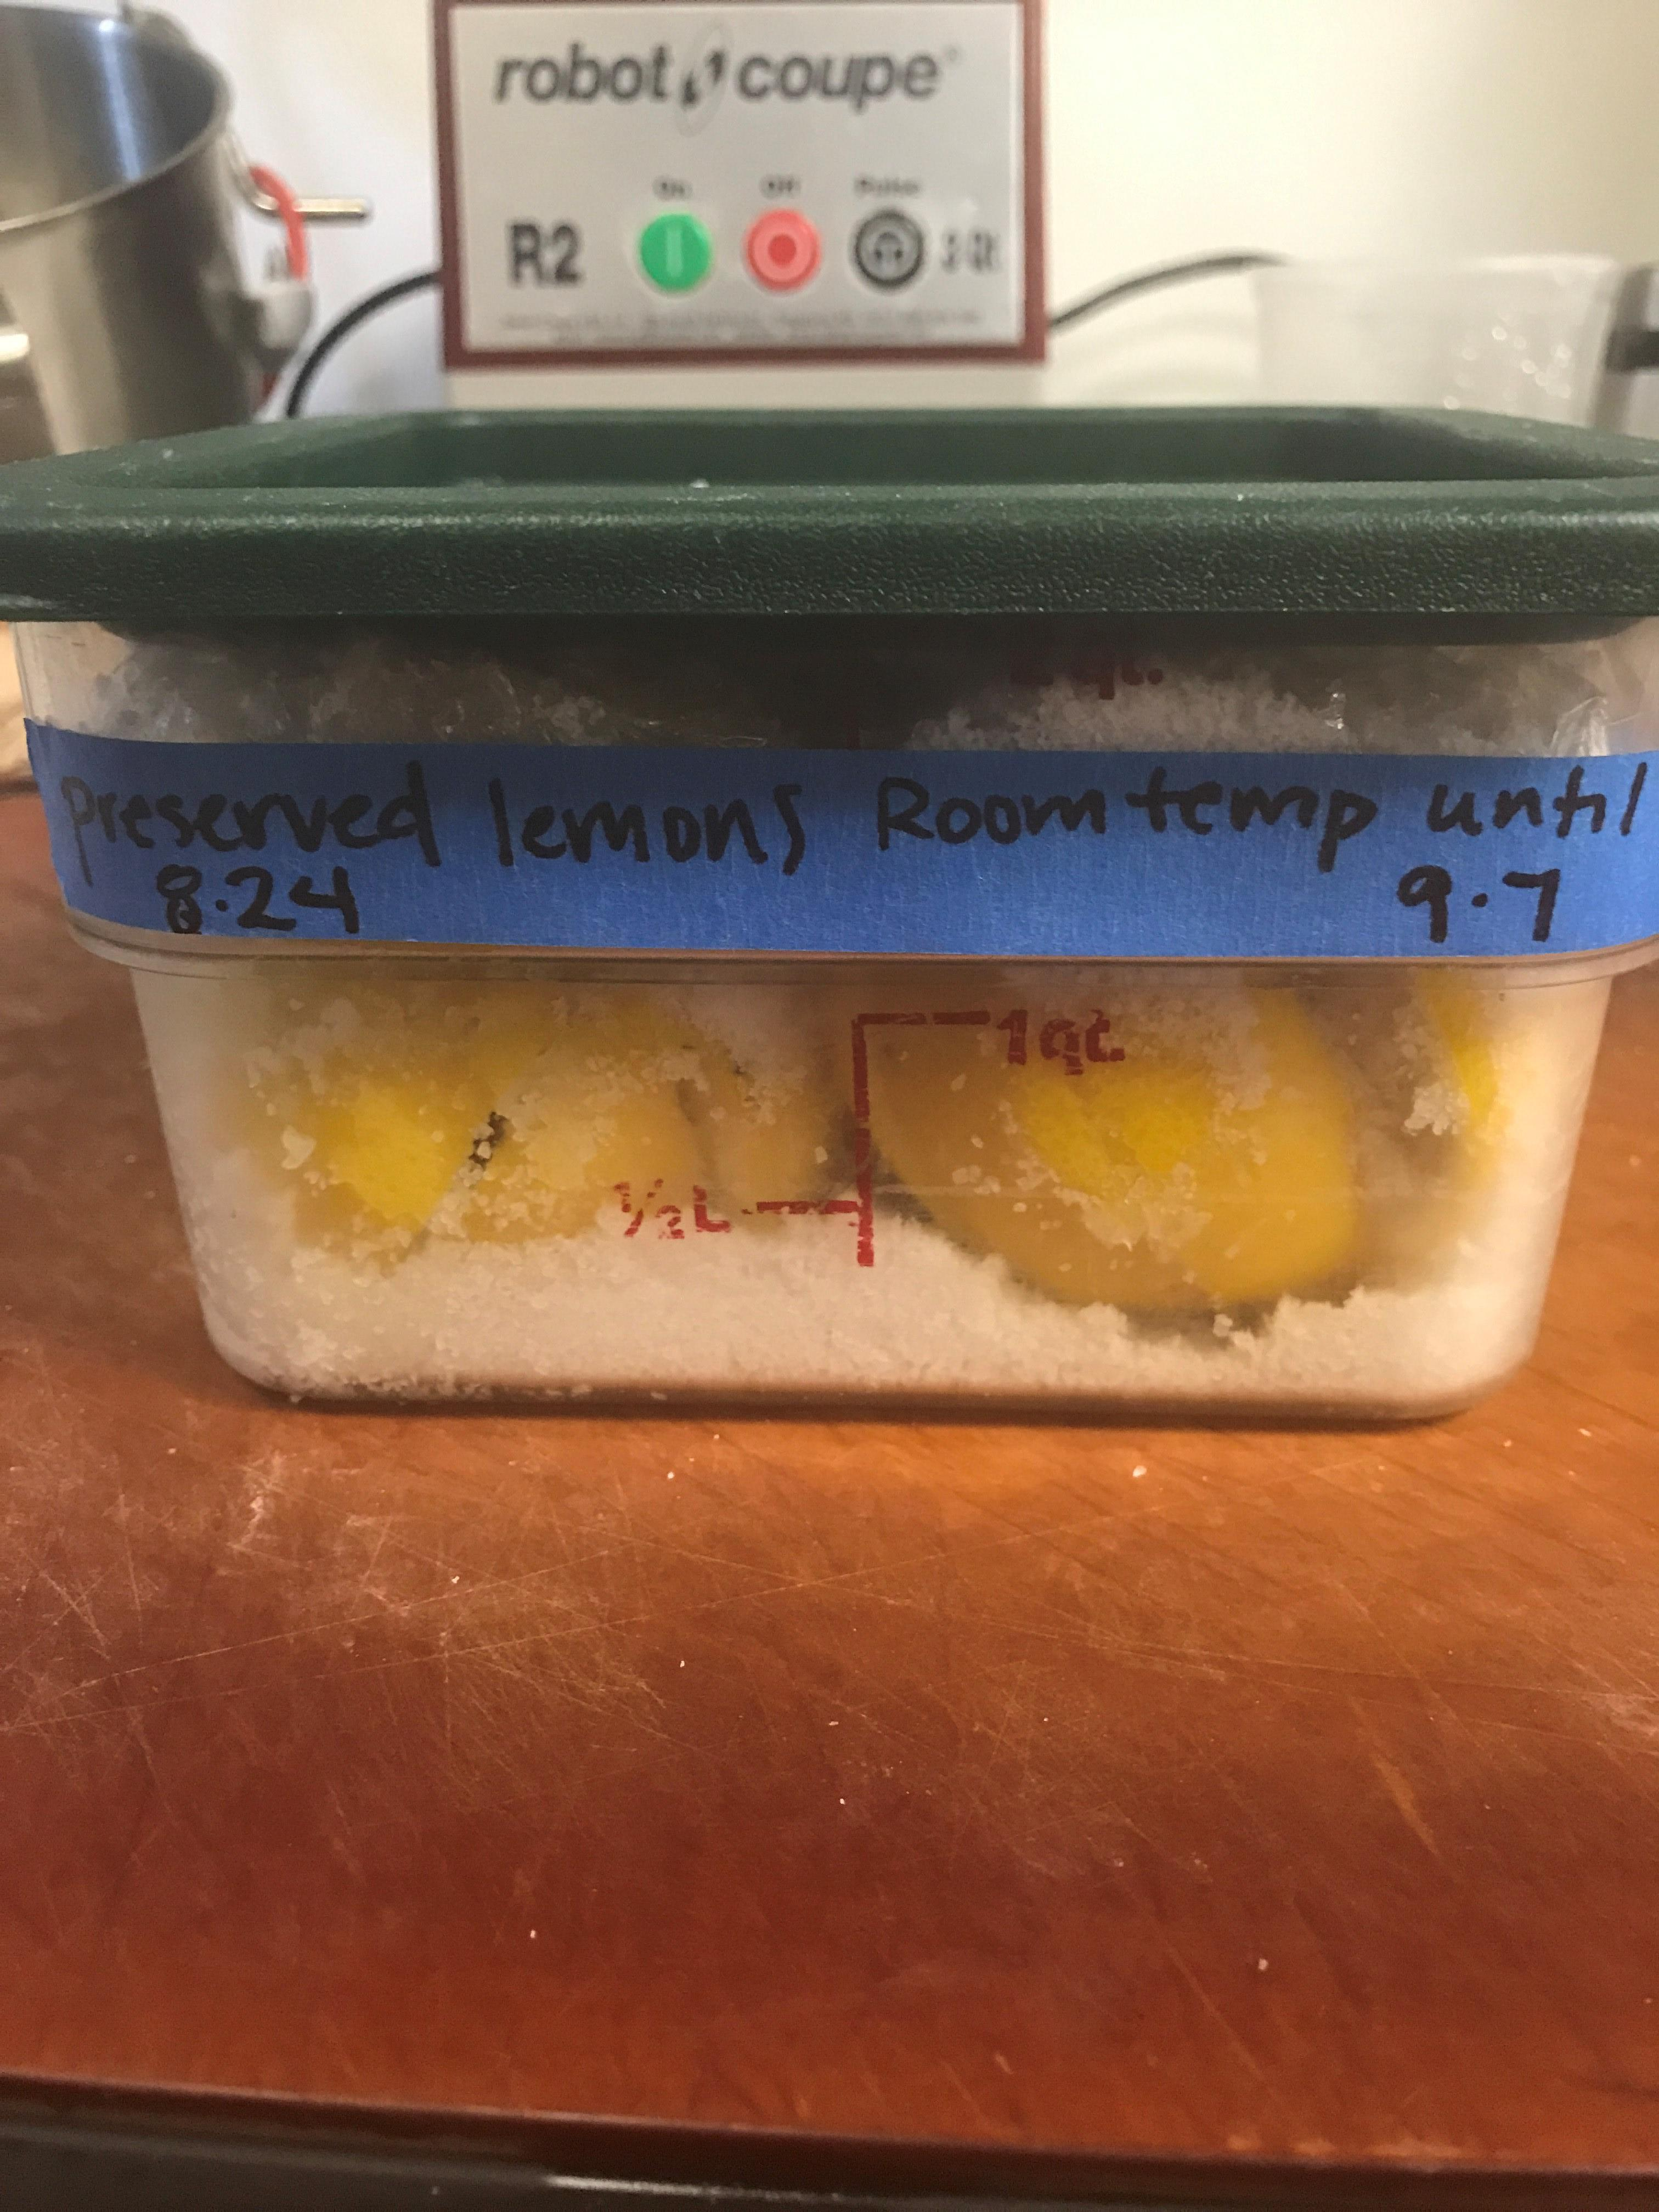 lemons labeled